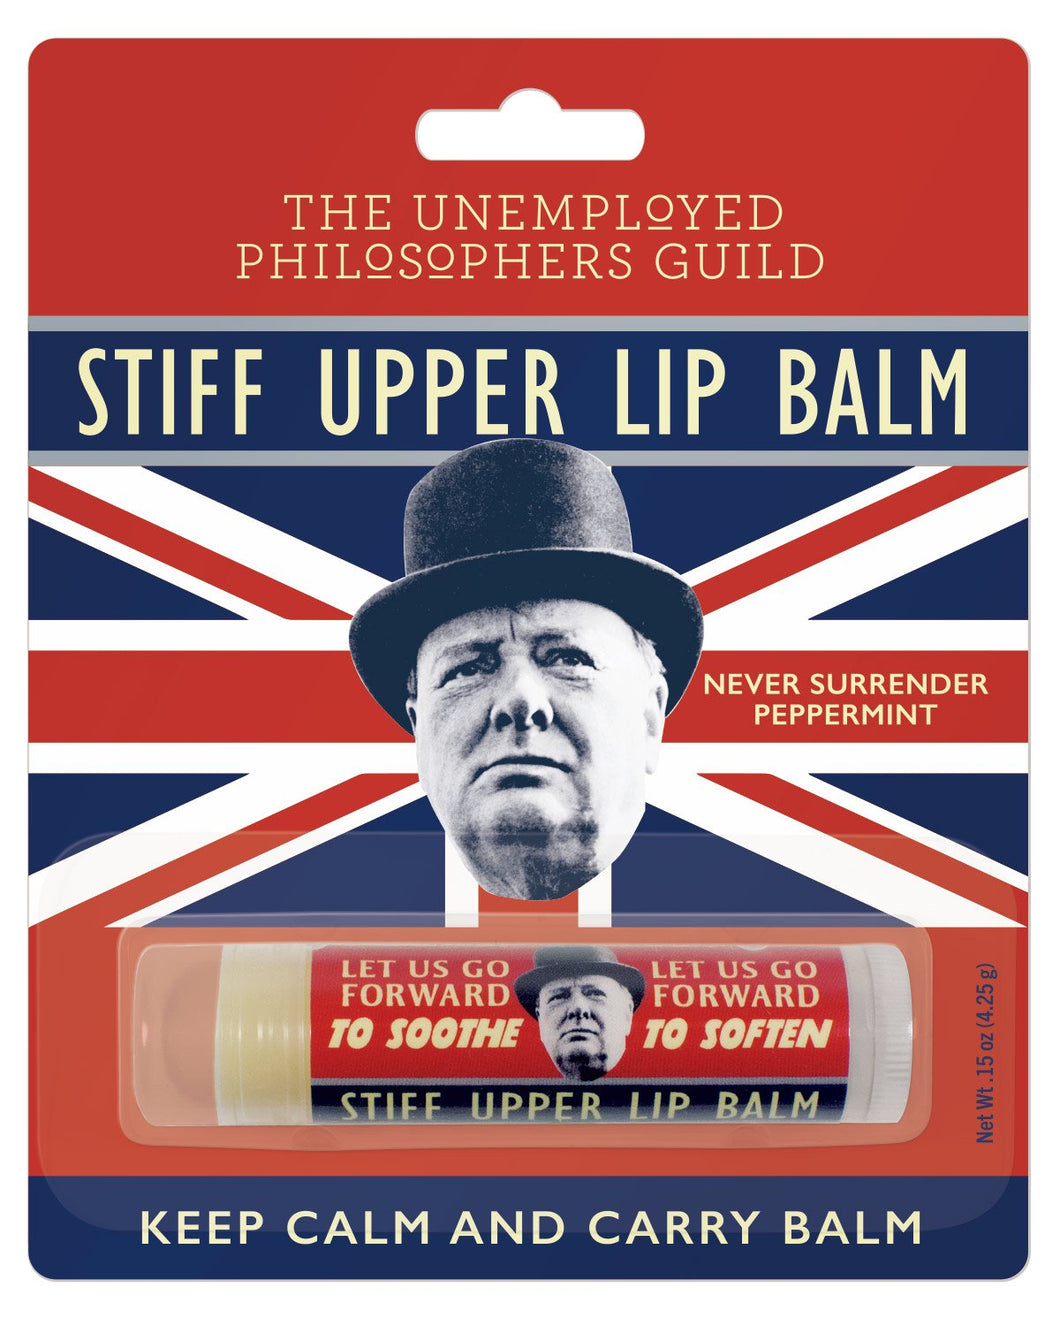 stiff upper lip balm unemployed philosopher's guild history lips sir winston churchill never surrender peppermint happiness gift unique